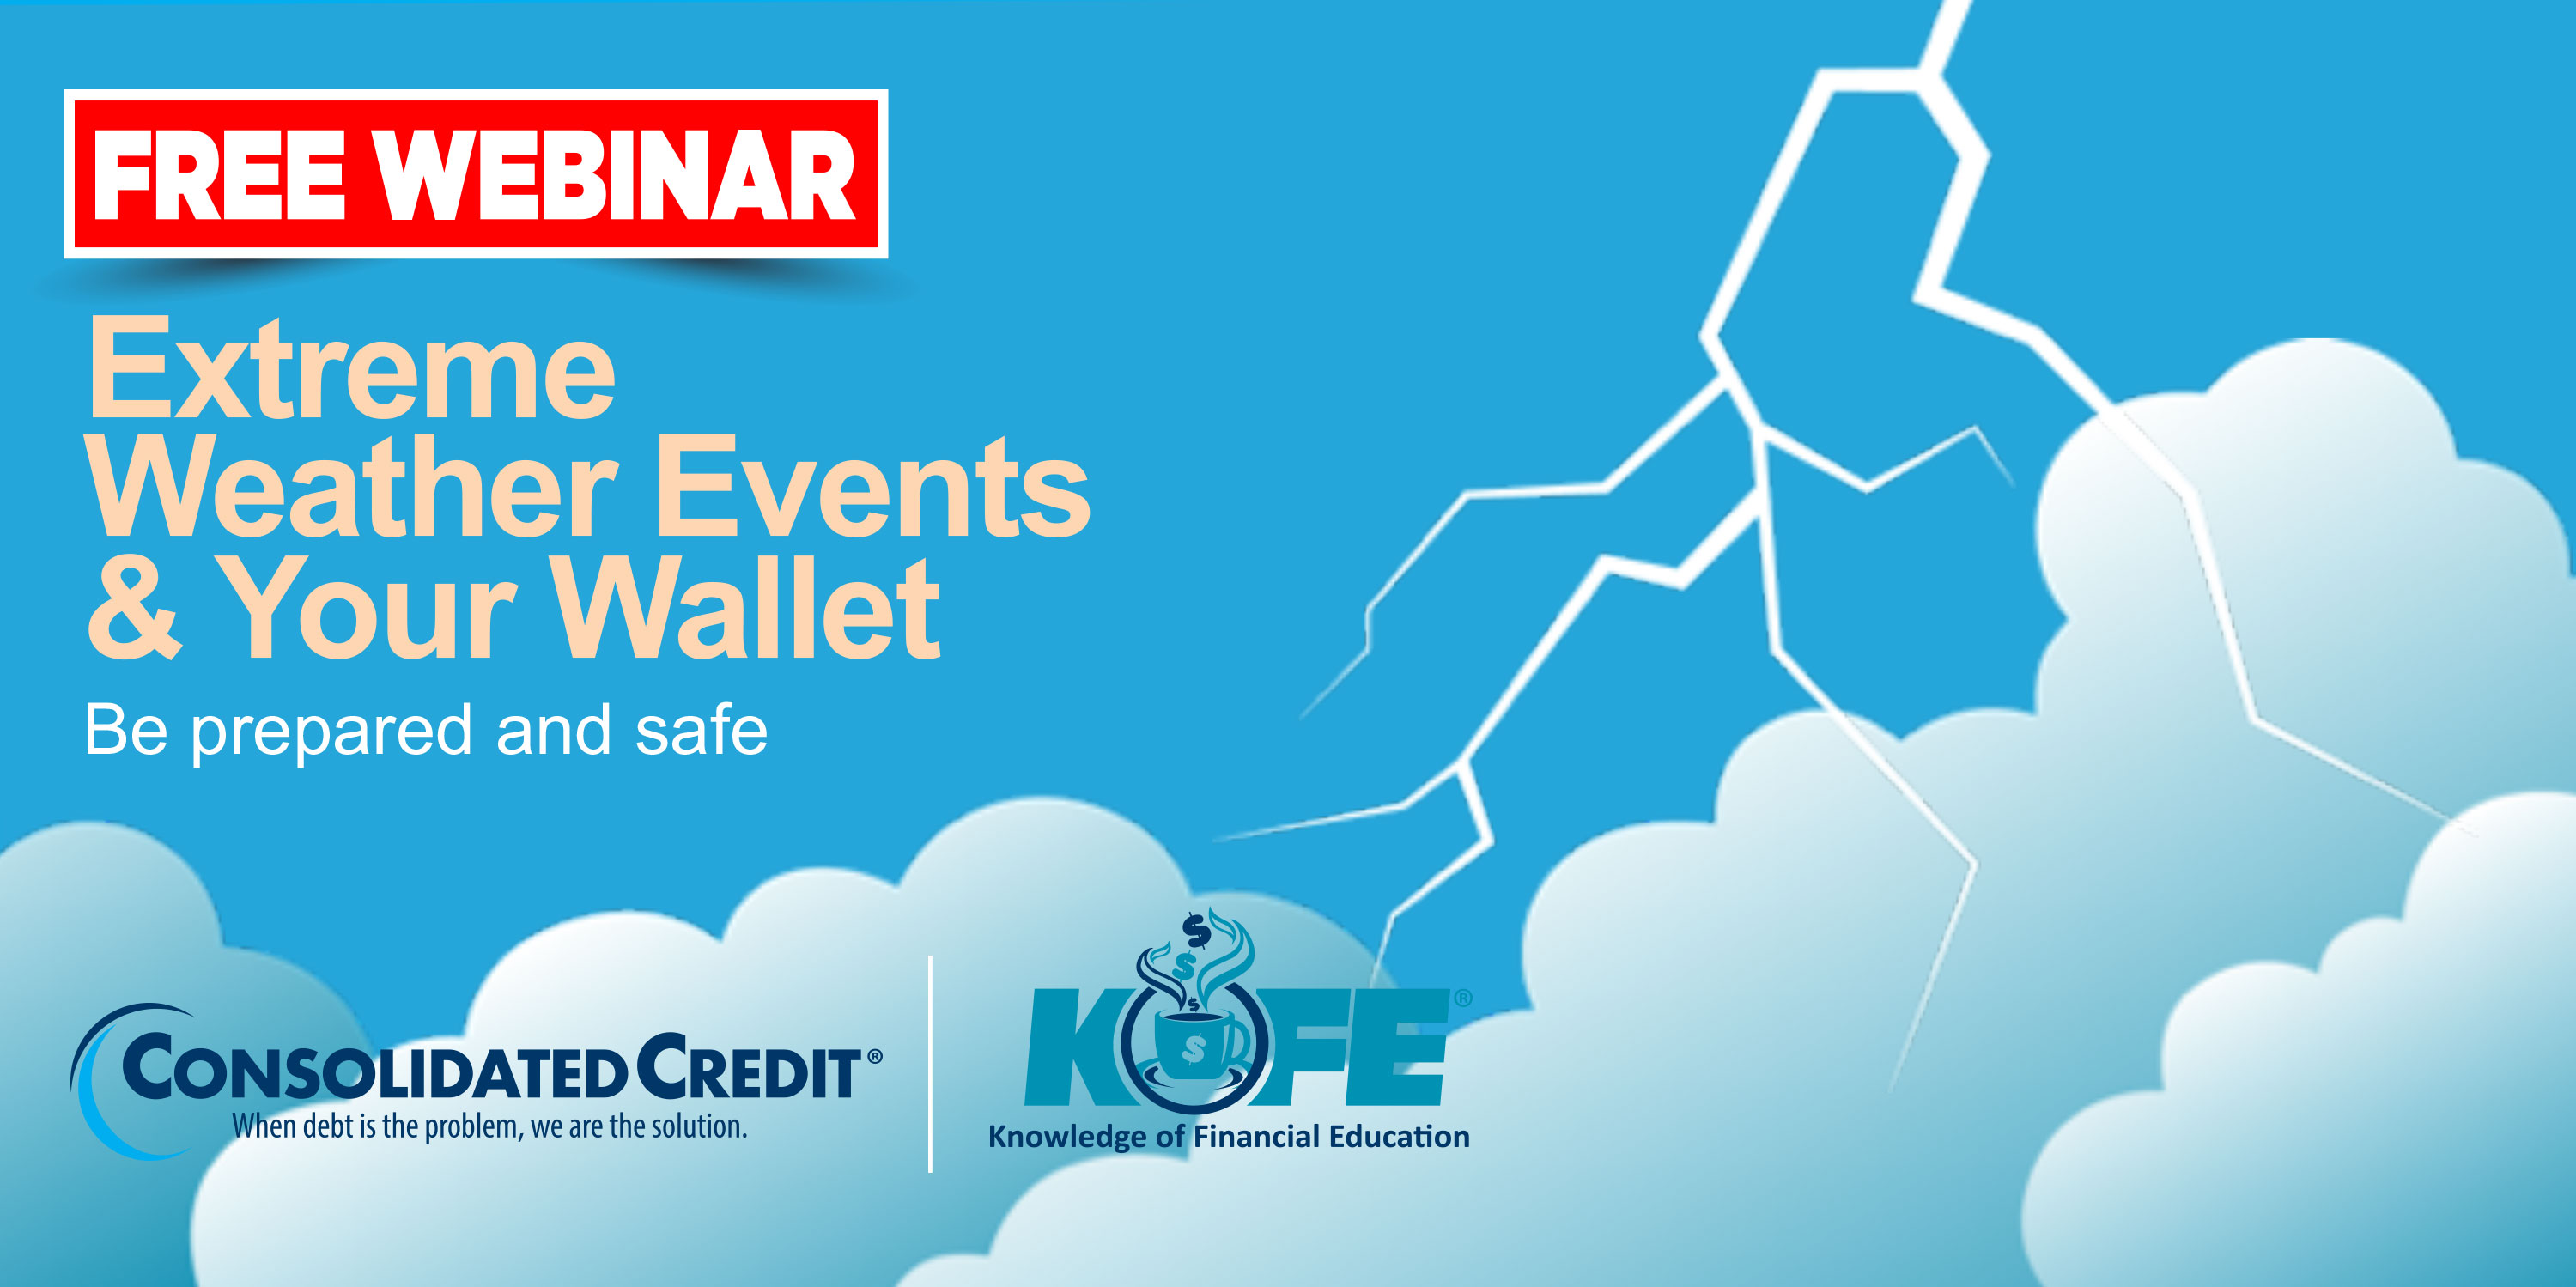 https://www.consolidatedcredit.org/wp-content/uploads/2020/07/Aug-6-Extreme-Weather-Events_CC-Kofe-Webinar_3000x1499_2020.jpg